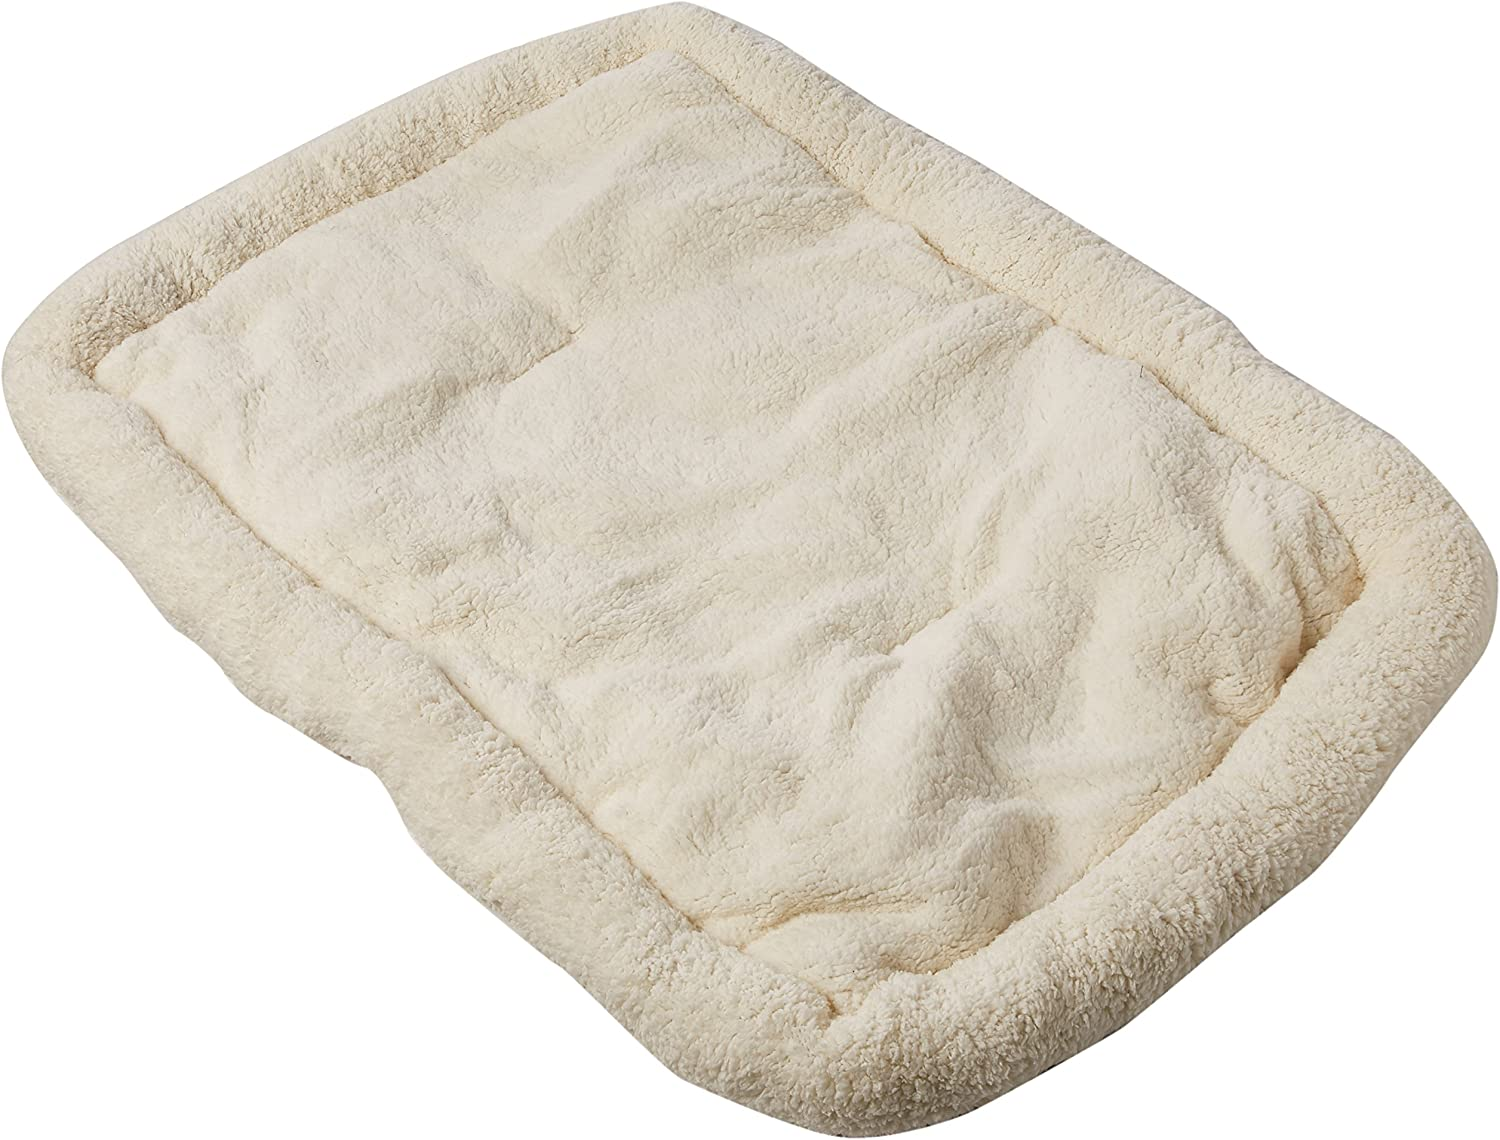 Long Rich HCT ERE001 Super Soft Sherpa Crate Cushion Dog and Pet Bed, White, by Happycare Textiles